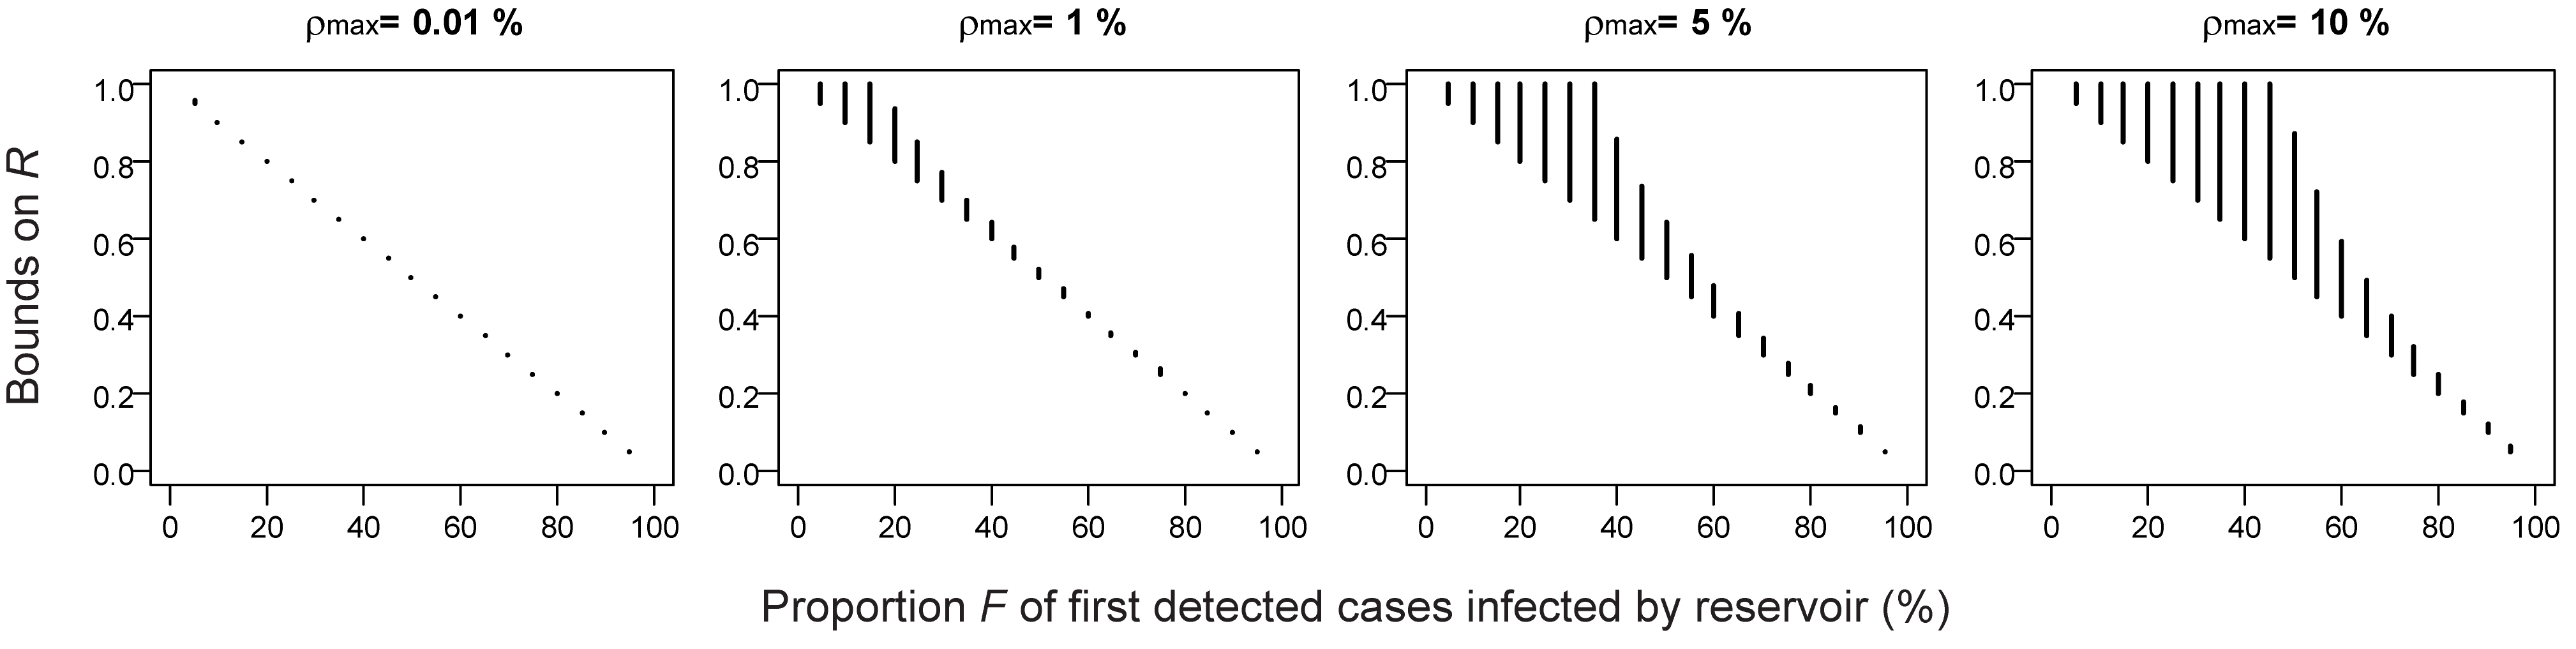 Impact of uncertainty on the case detection rate and the overdispersion parameter on estimates of the reproduction number R.